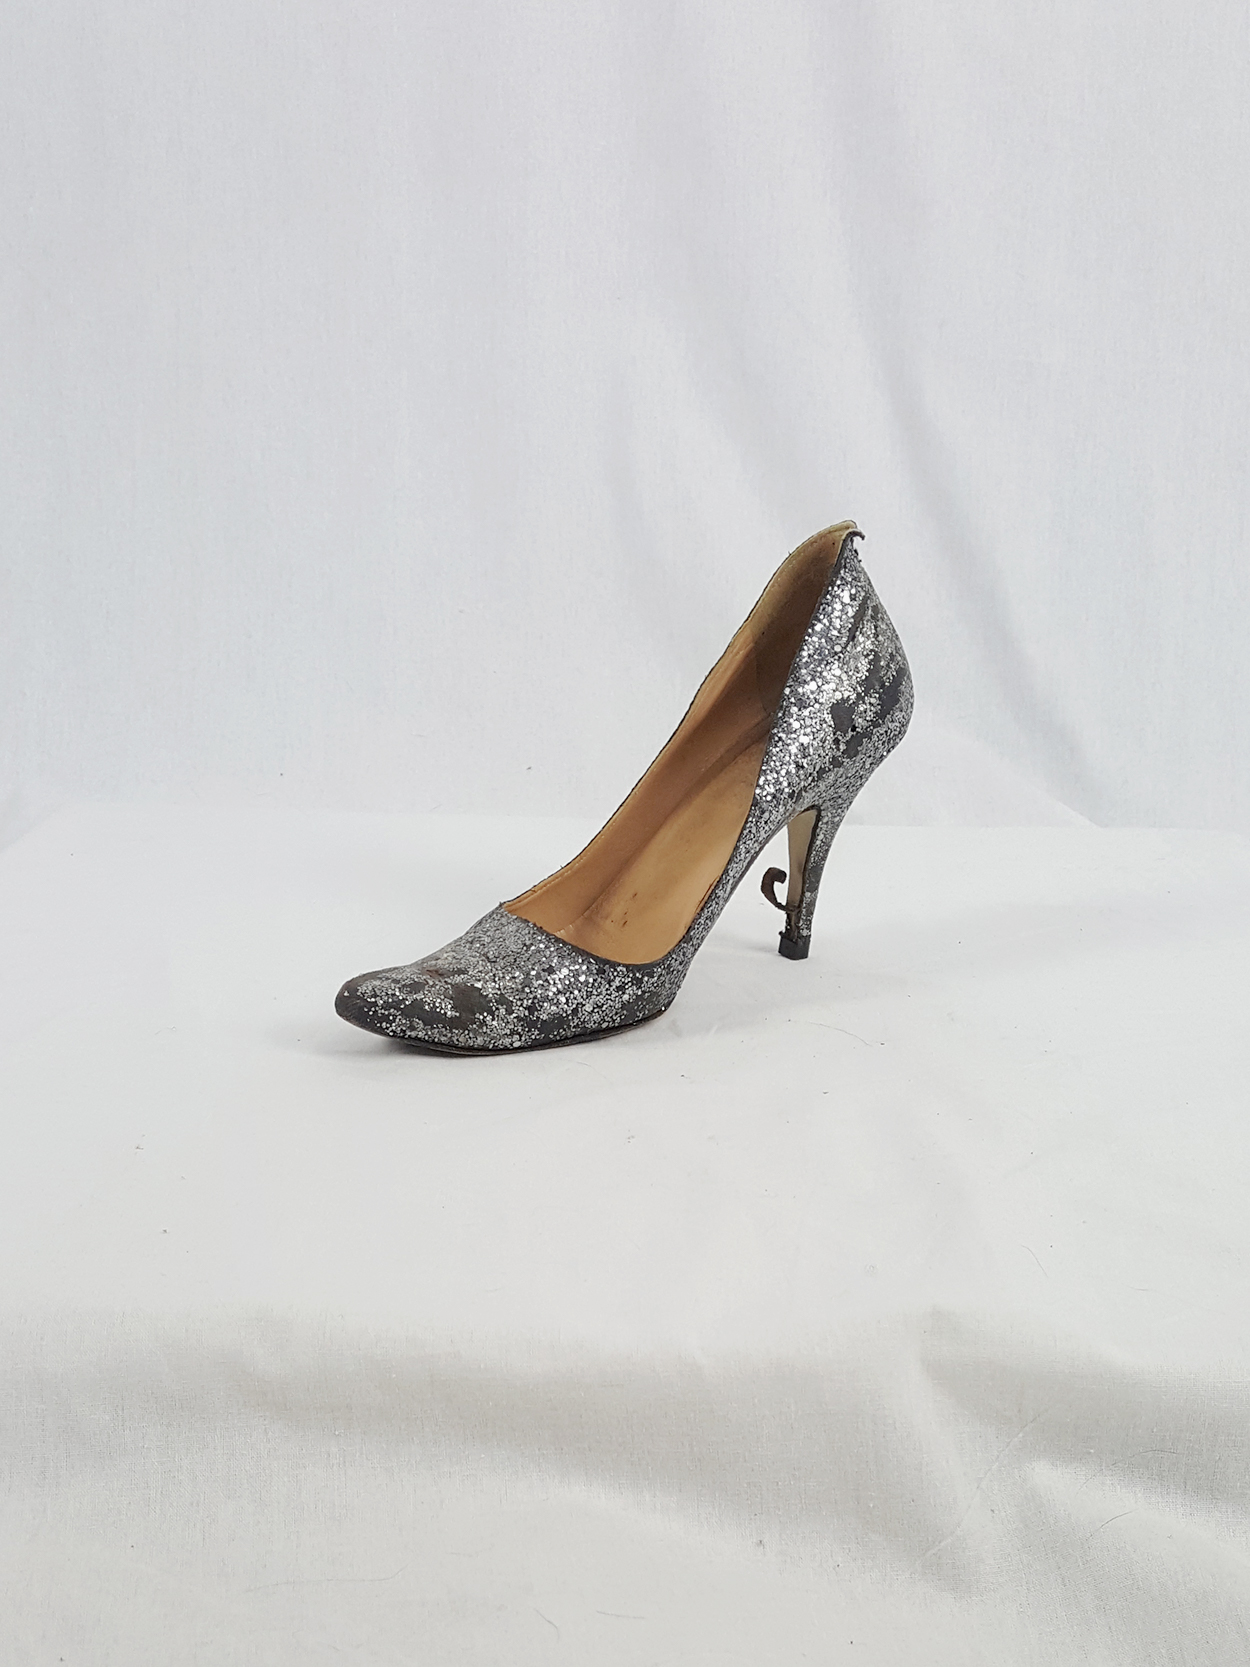 6d3a76db0fe vaniitas vintage Maison Martin Margiela silver glitter afterparty pumps  spring 2005 141733